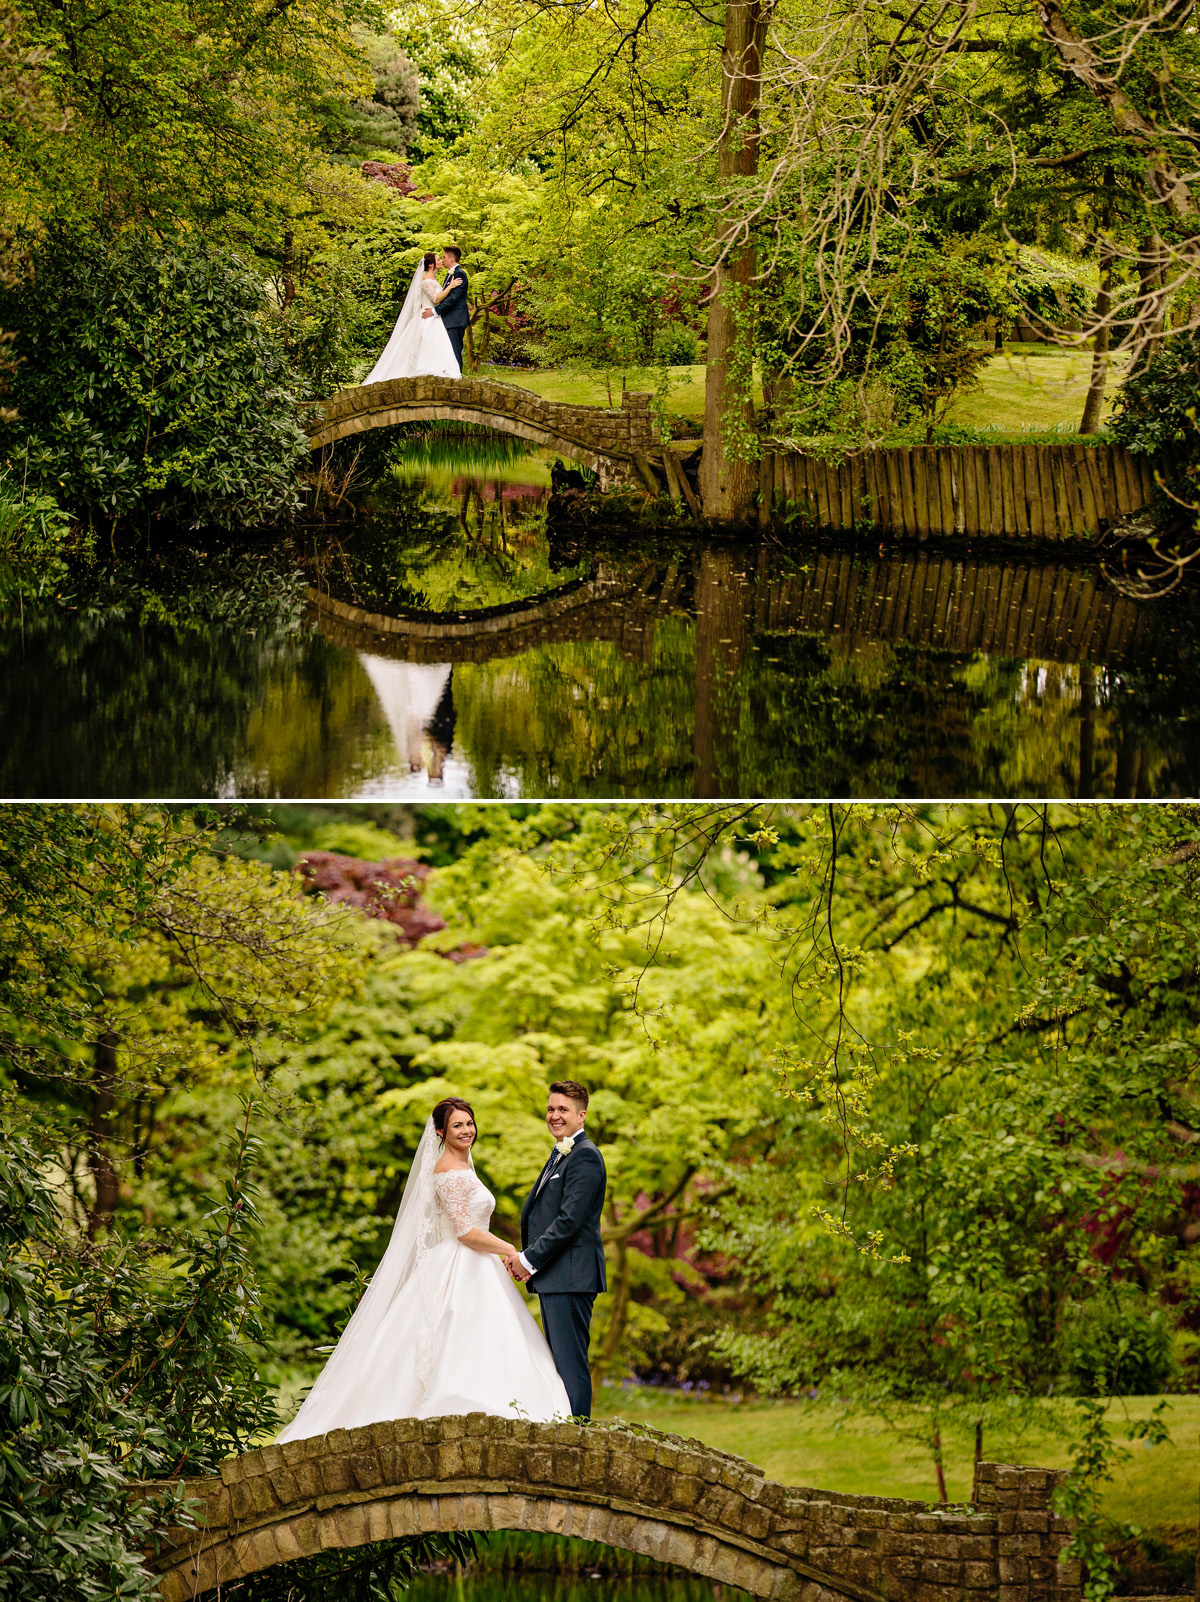 Gorgeous Bride and Groom photos over the lake